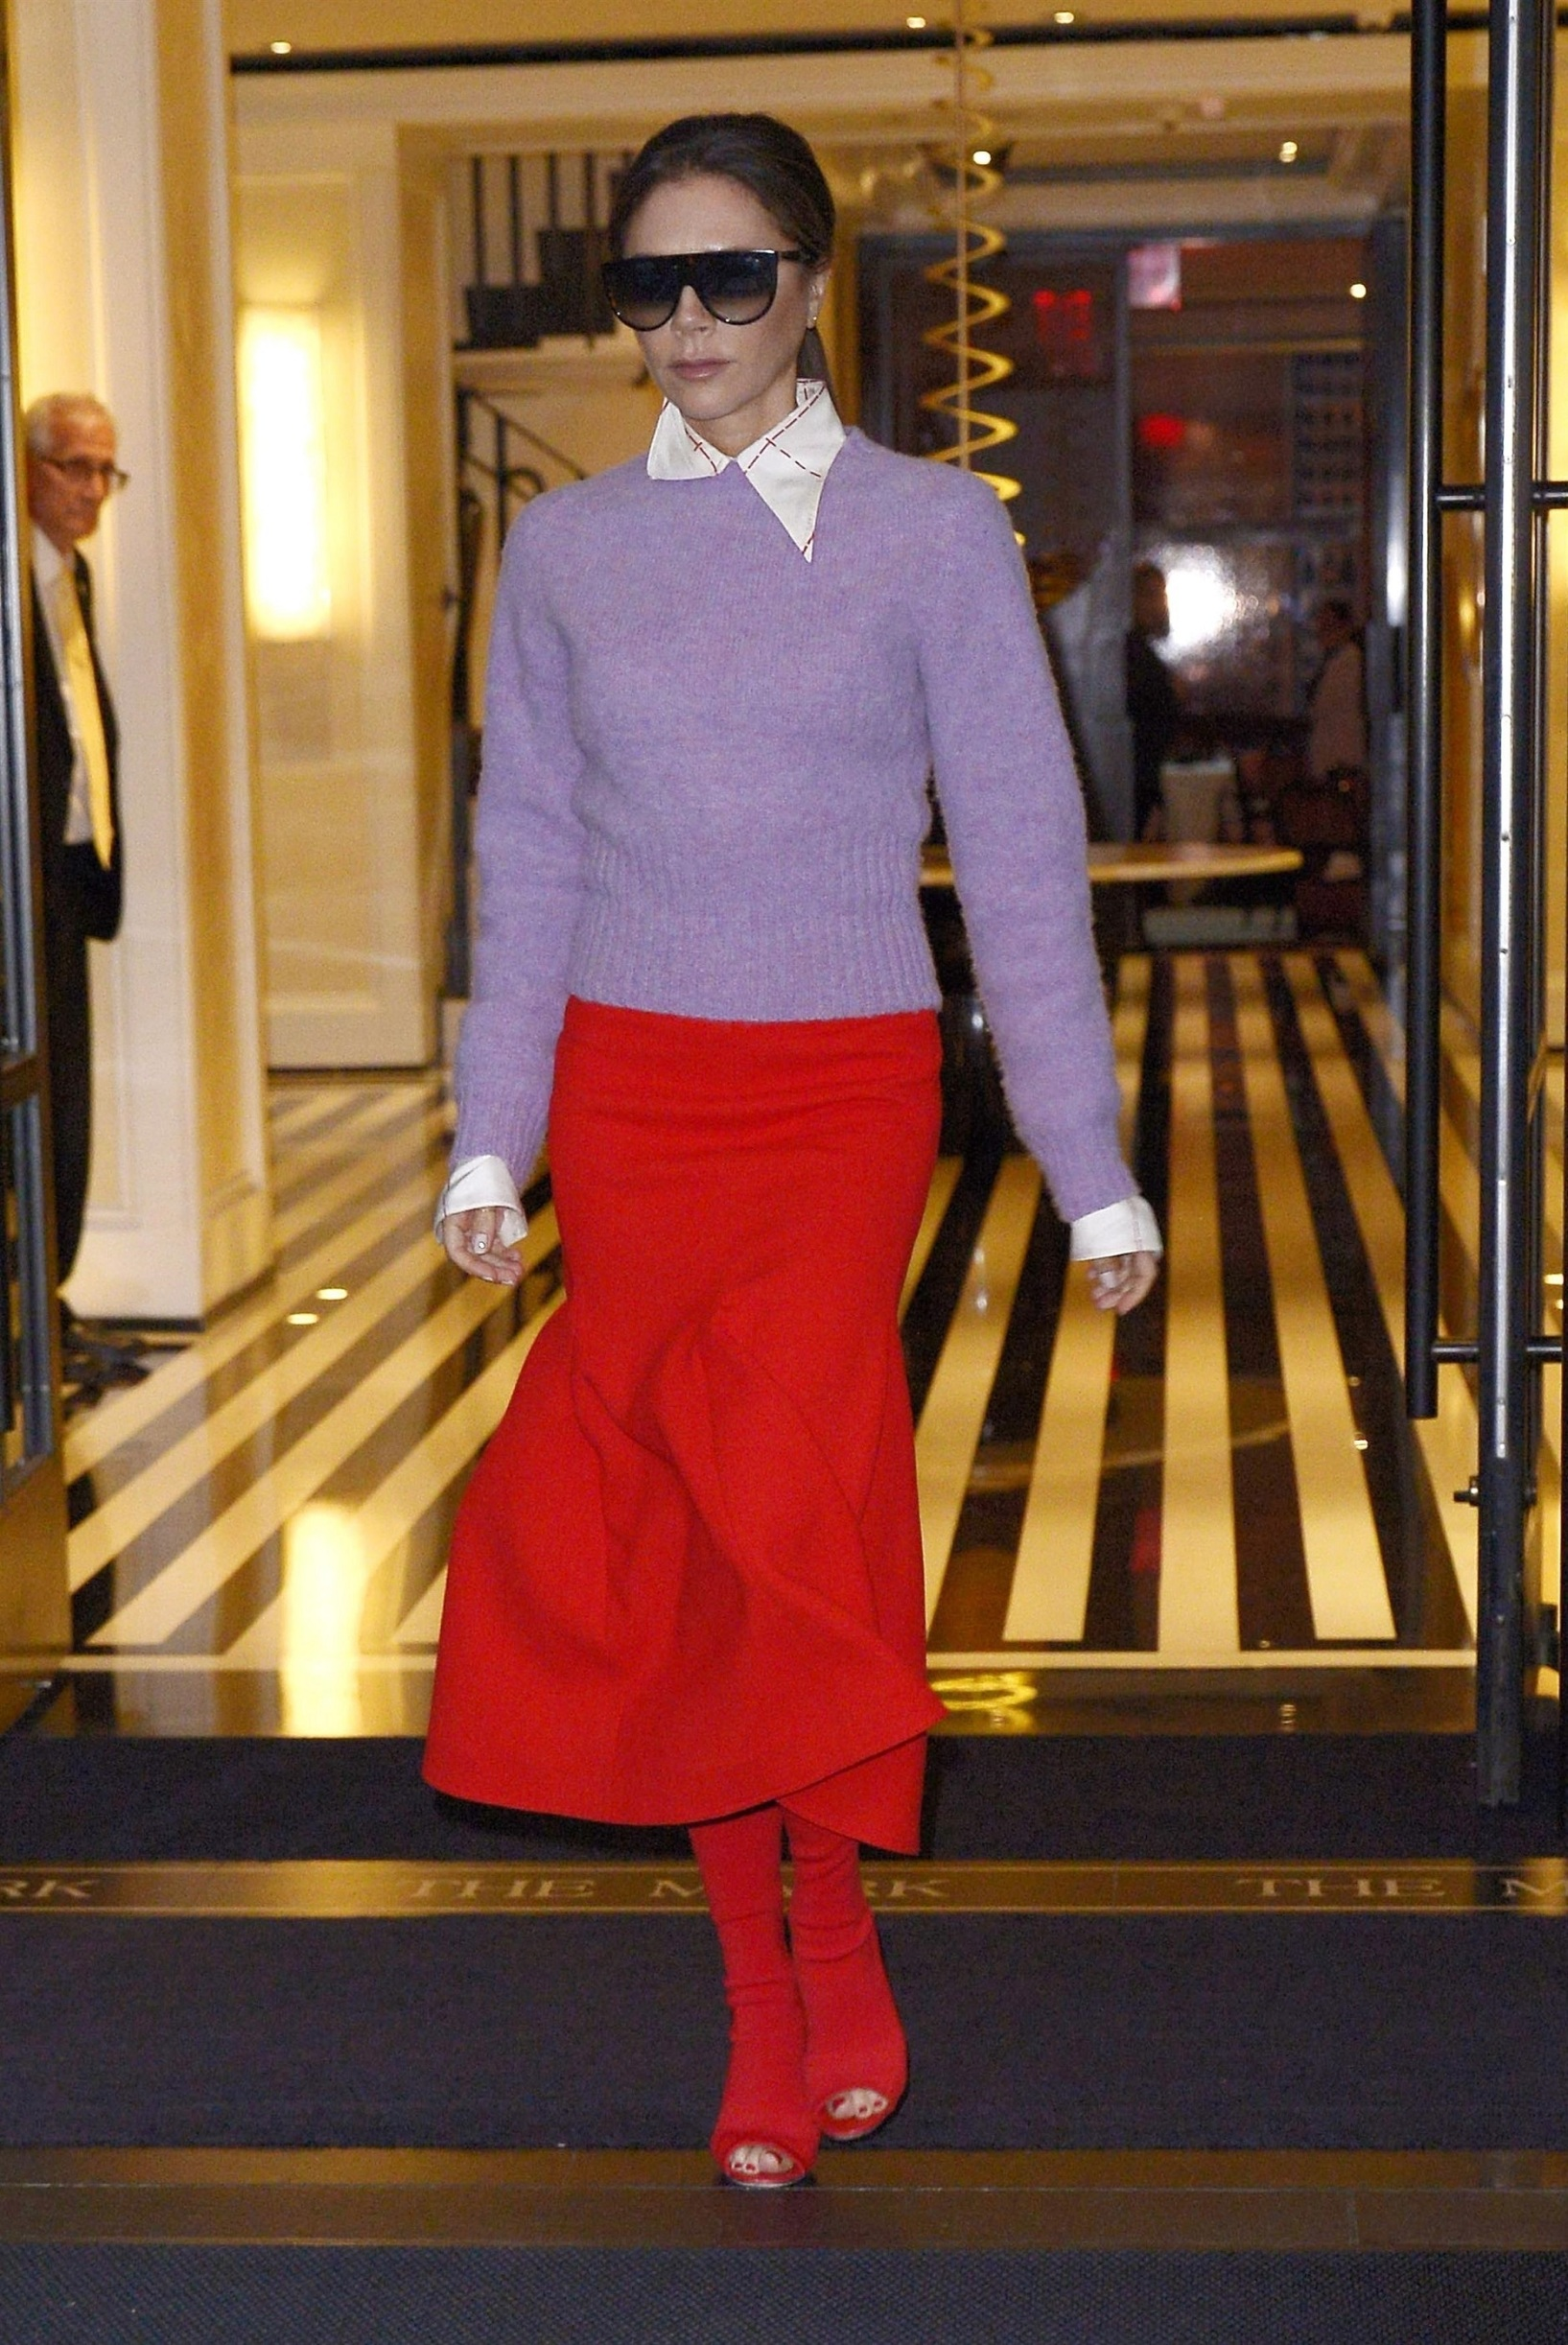 New York, NY  - Victoria Beckham wears a red skirt and matching red shoes on her way to the Today show in New York City. Victoria stands out in the stylish outfit for the talk show appearance.  *UK Clients - Pictures Containing Children Please Pixelate Face Prior To Publication*, Image: 476903578, License: Rights-managed, Restrictions: , Model Release: no, Credit line: BACKGRID / Backgrid USA / Profimedia